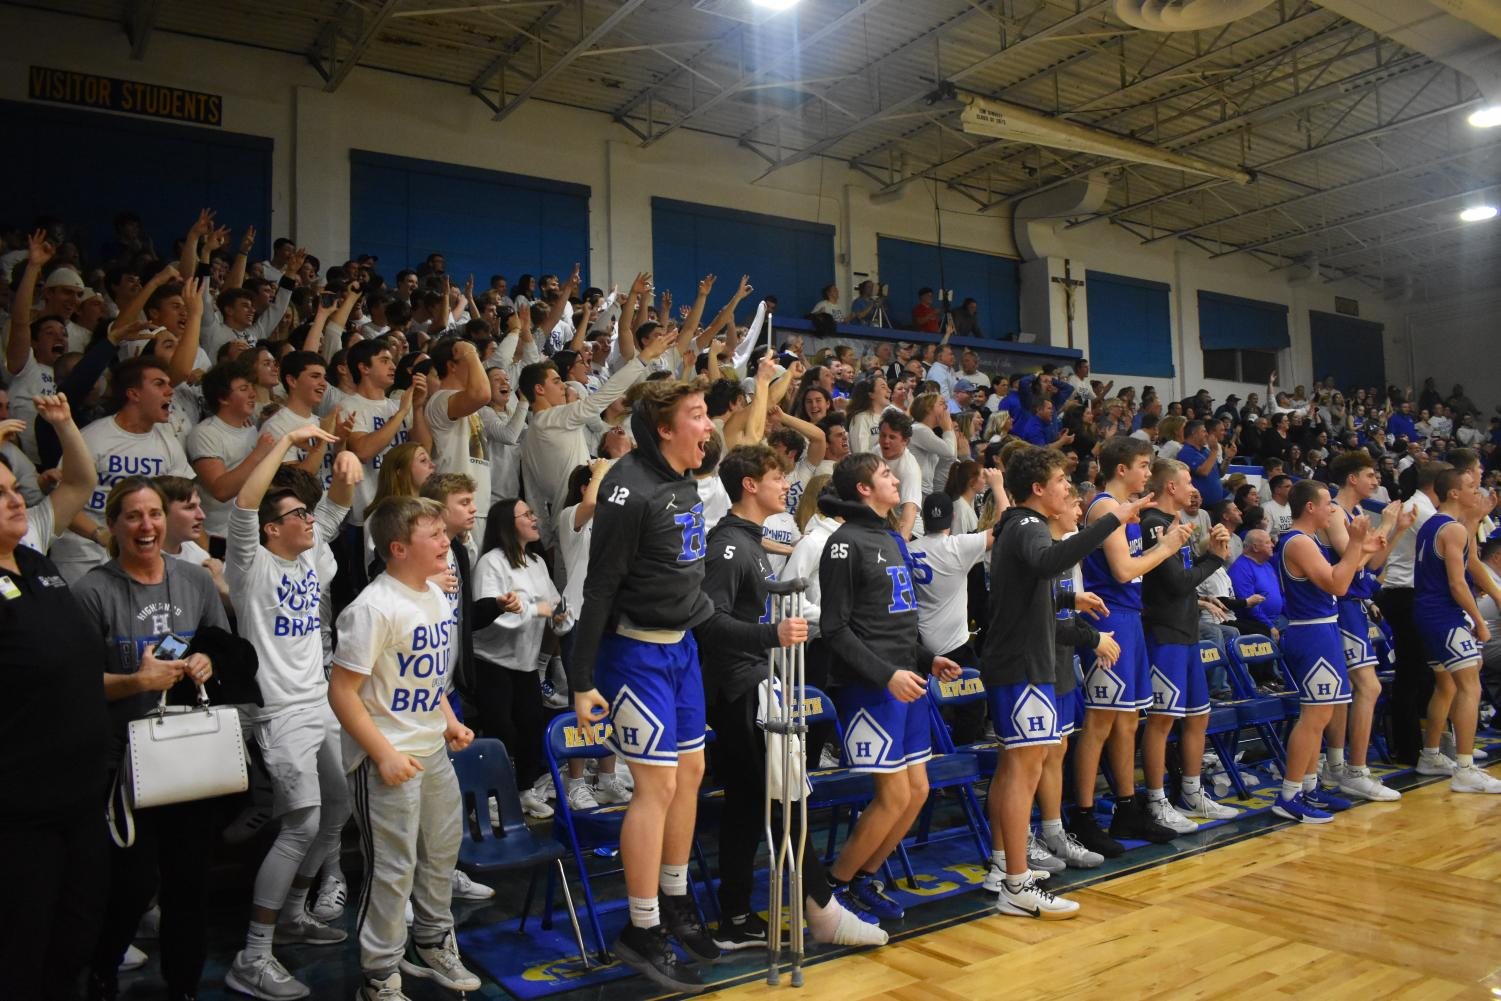 The O-Zone and players on the sideline celebrate following a dunk by Junior Sam Vinson.